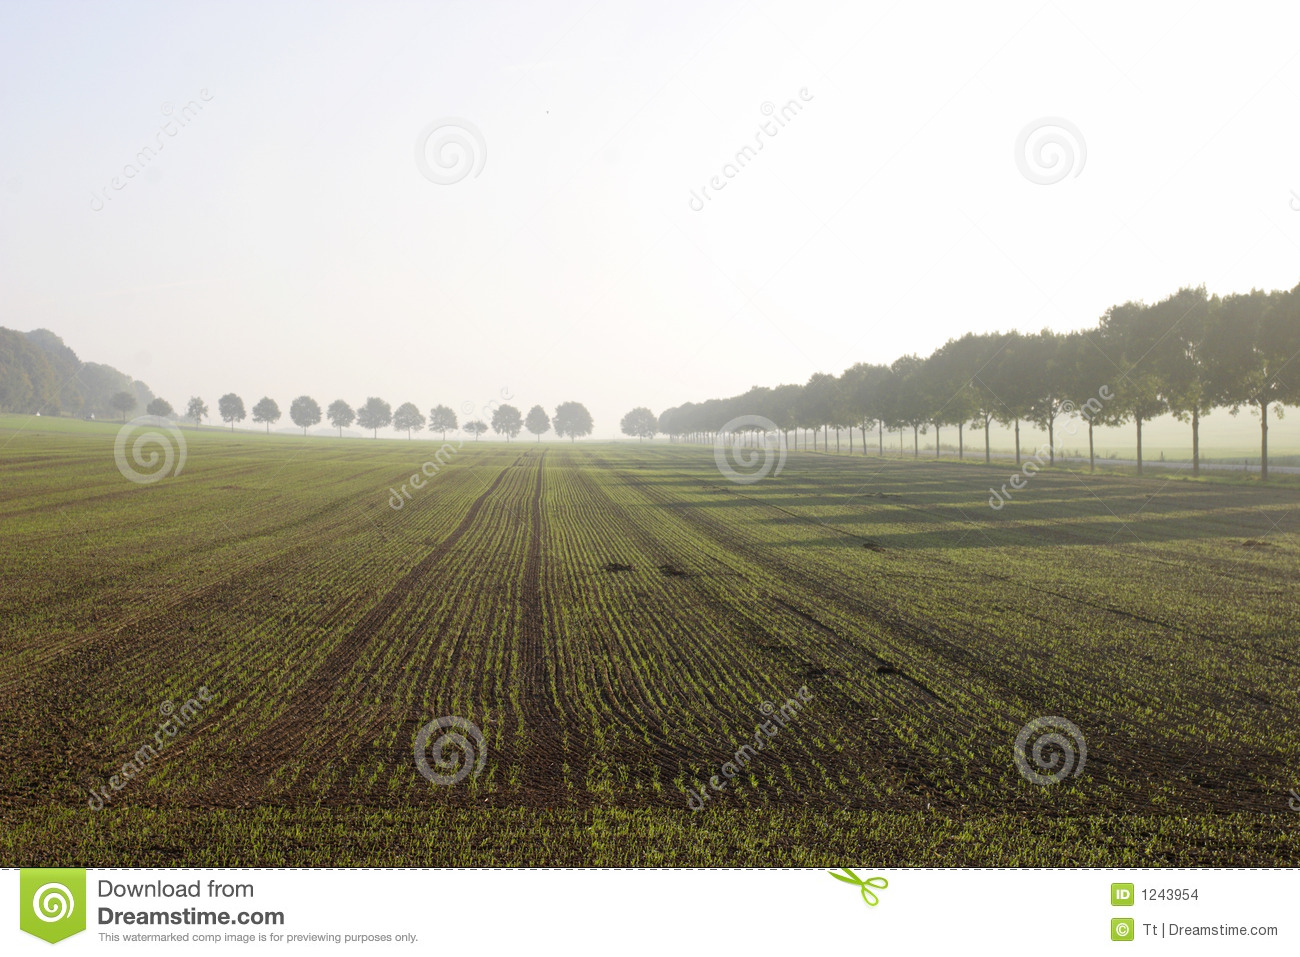 Field in fog.